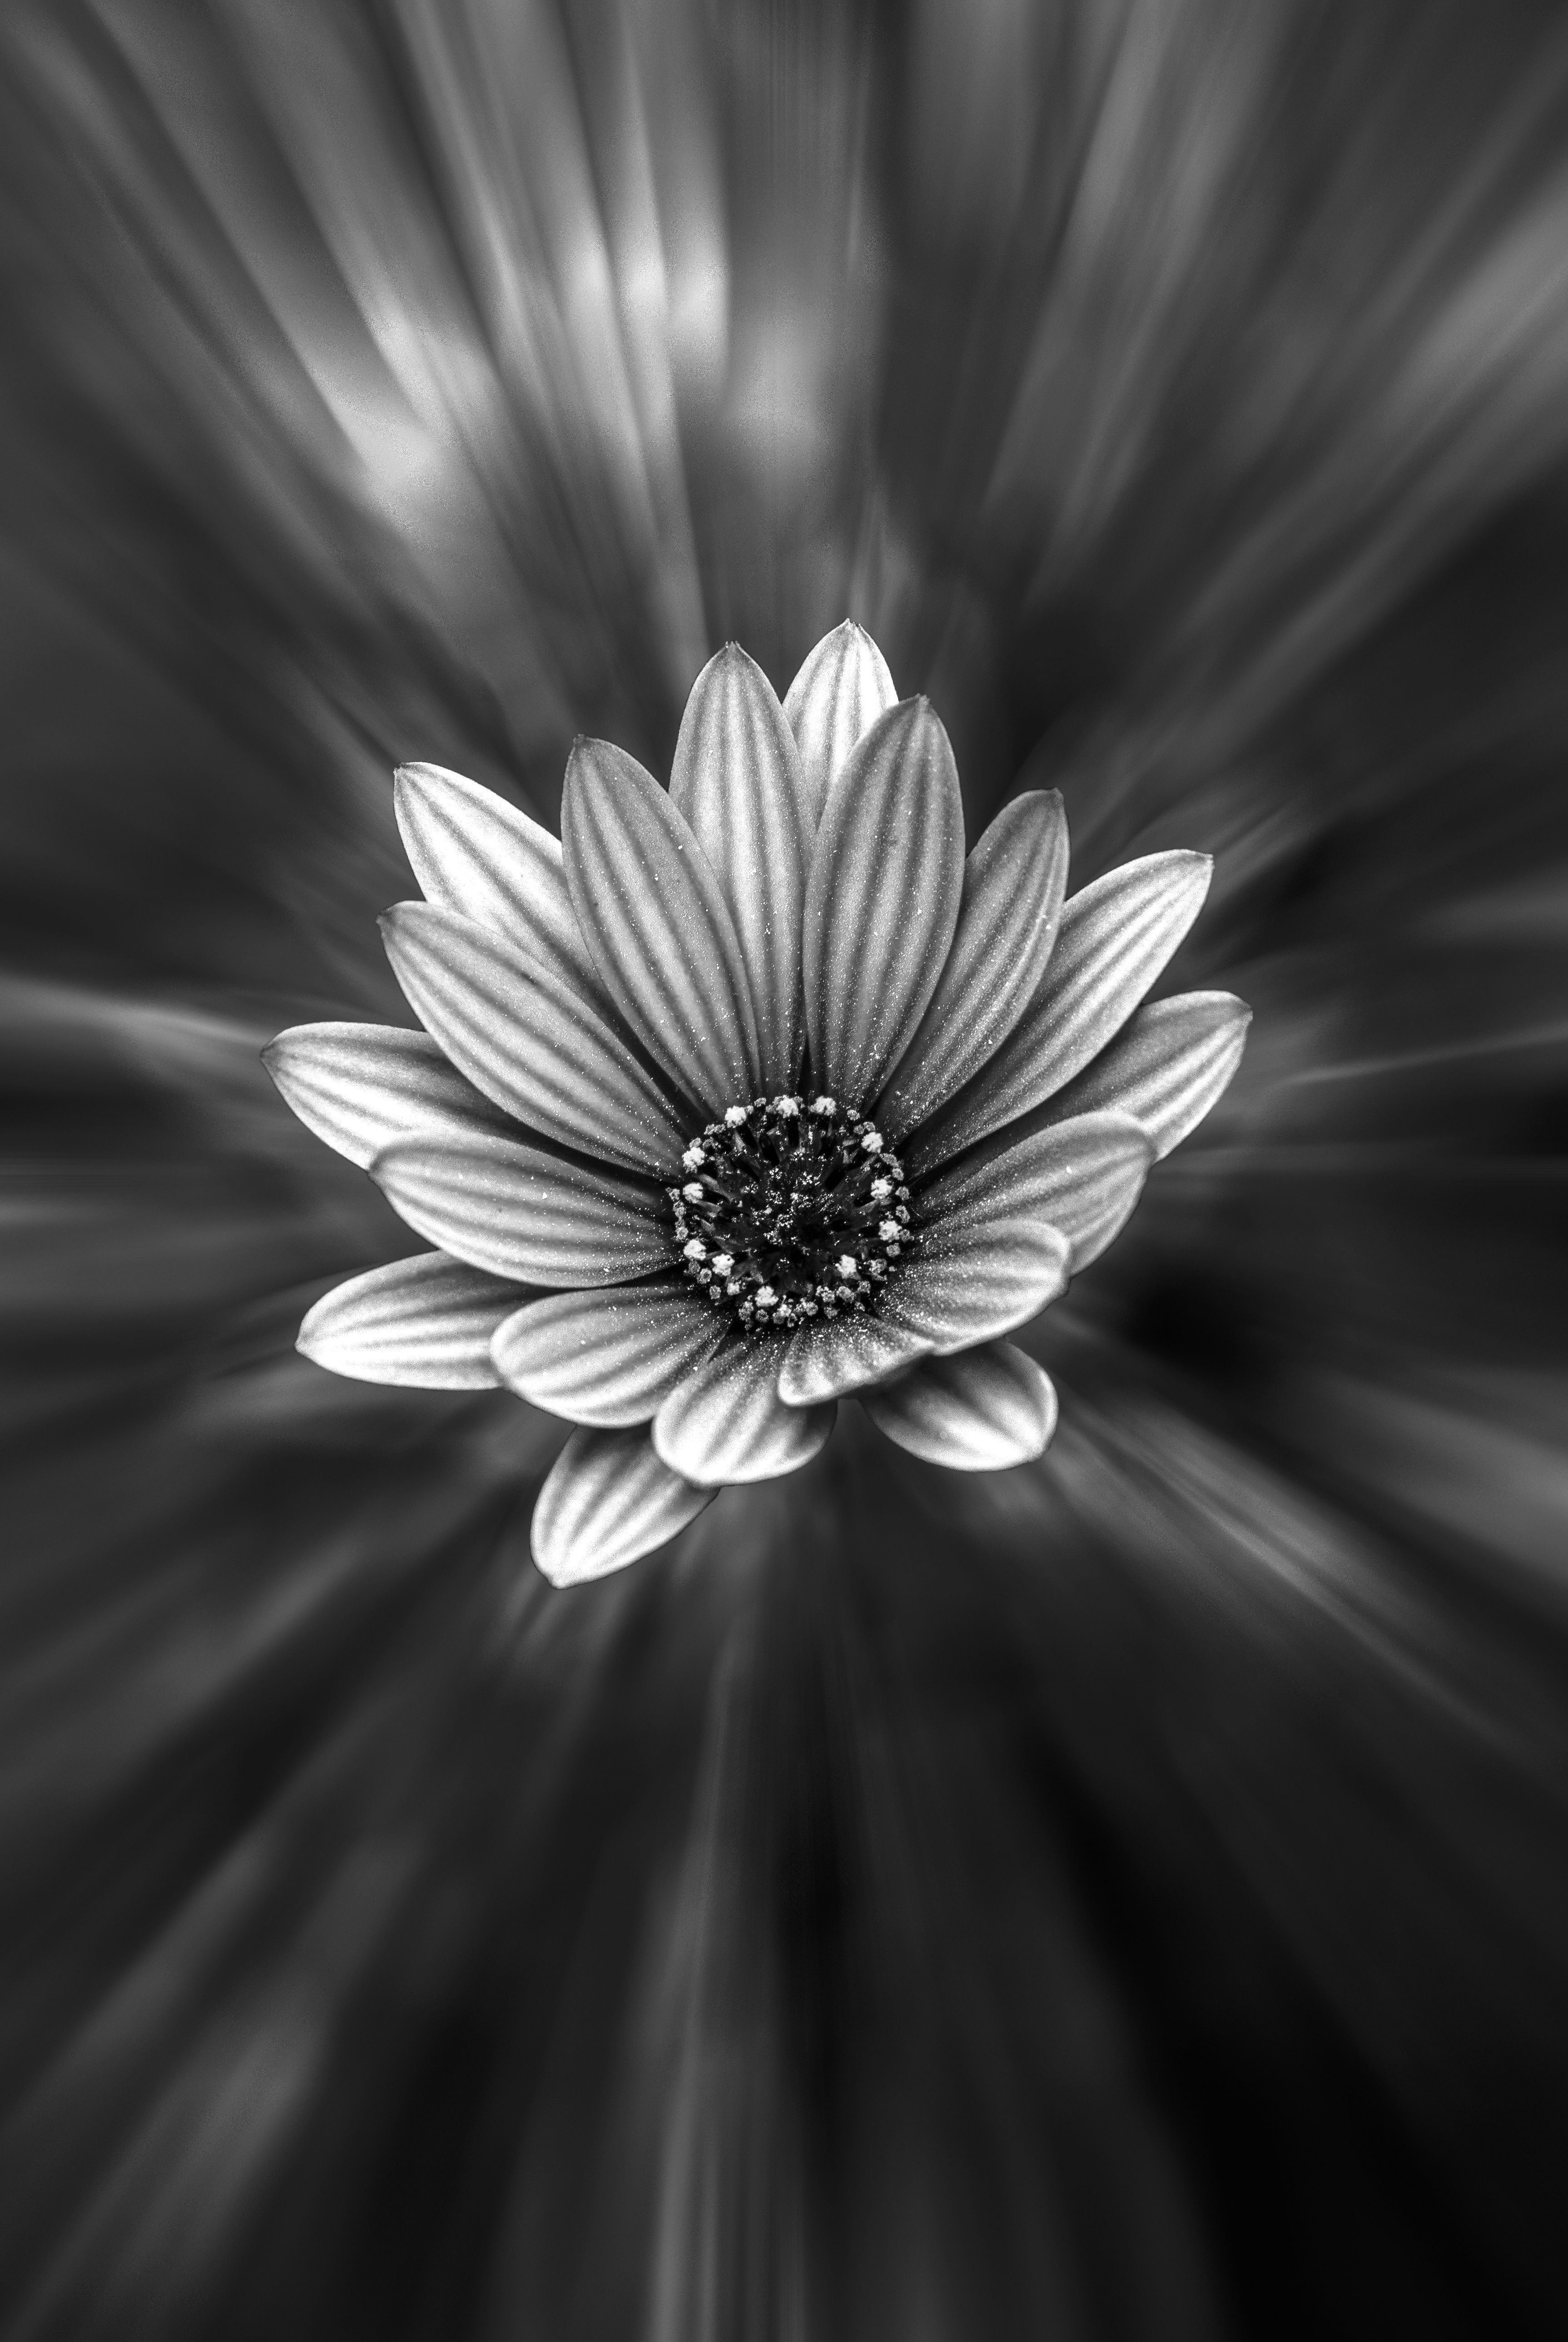 Free photos of white flowers banner transparent Free stock photo of black-and-white, blossom, flower banner transparent